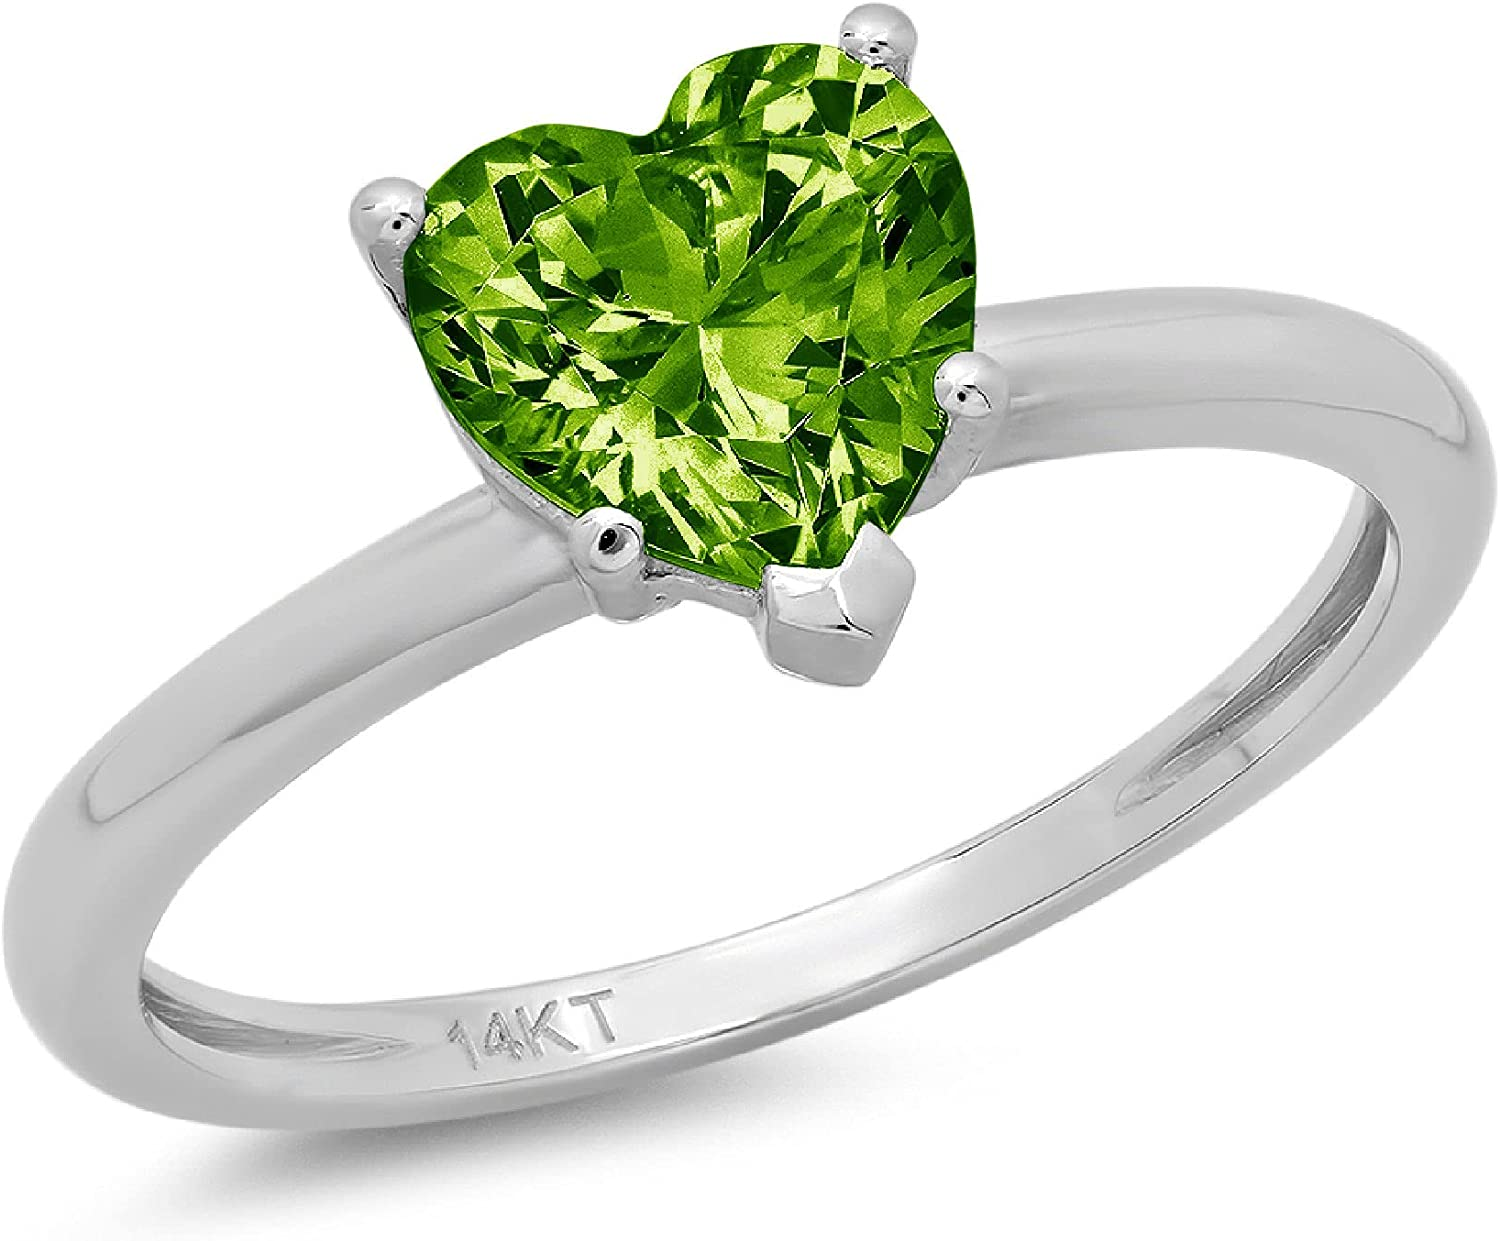 0.9ct Brilliant Heart Cut Solitaire Genuine Natural Vivid Green Peridot Ideal VVS1 5-Prong Engagement Wedding Bridal Promise Anniversary Ring Solid 14k White Gold for Women